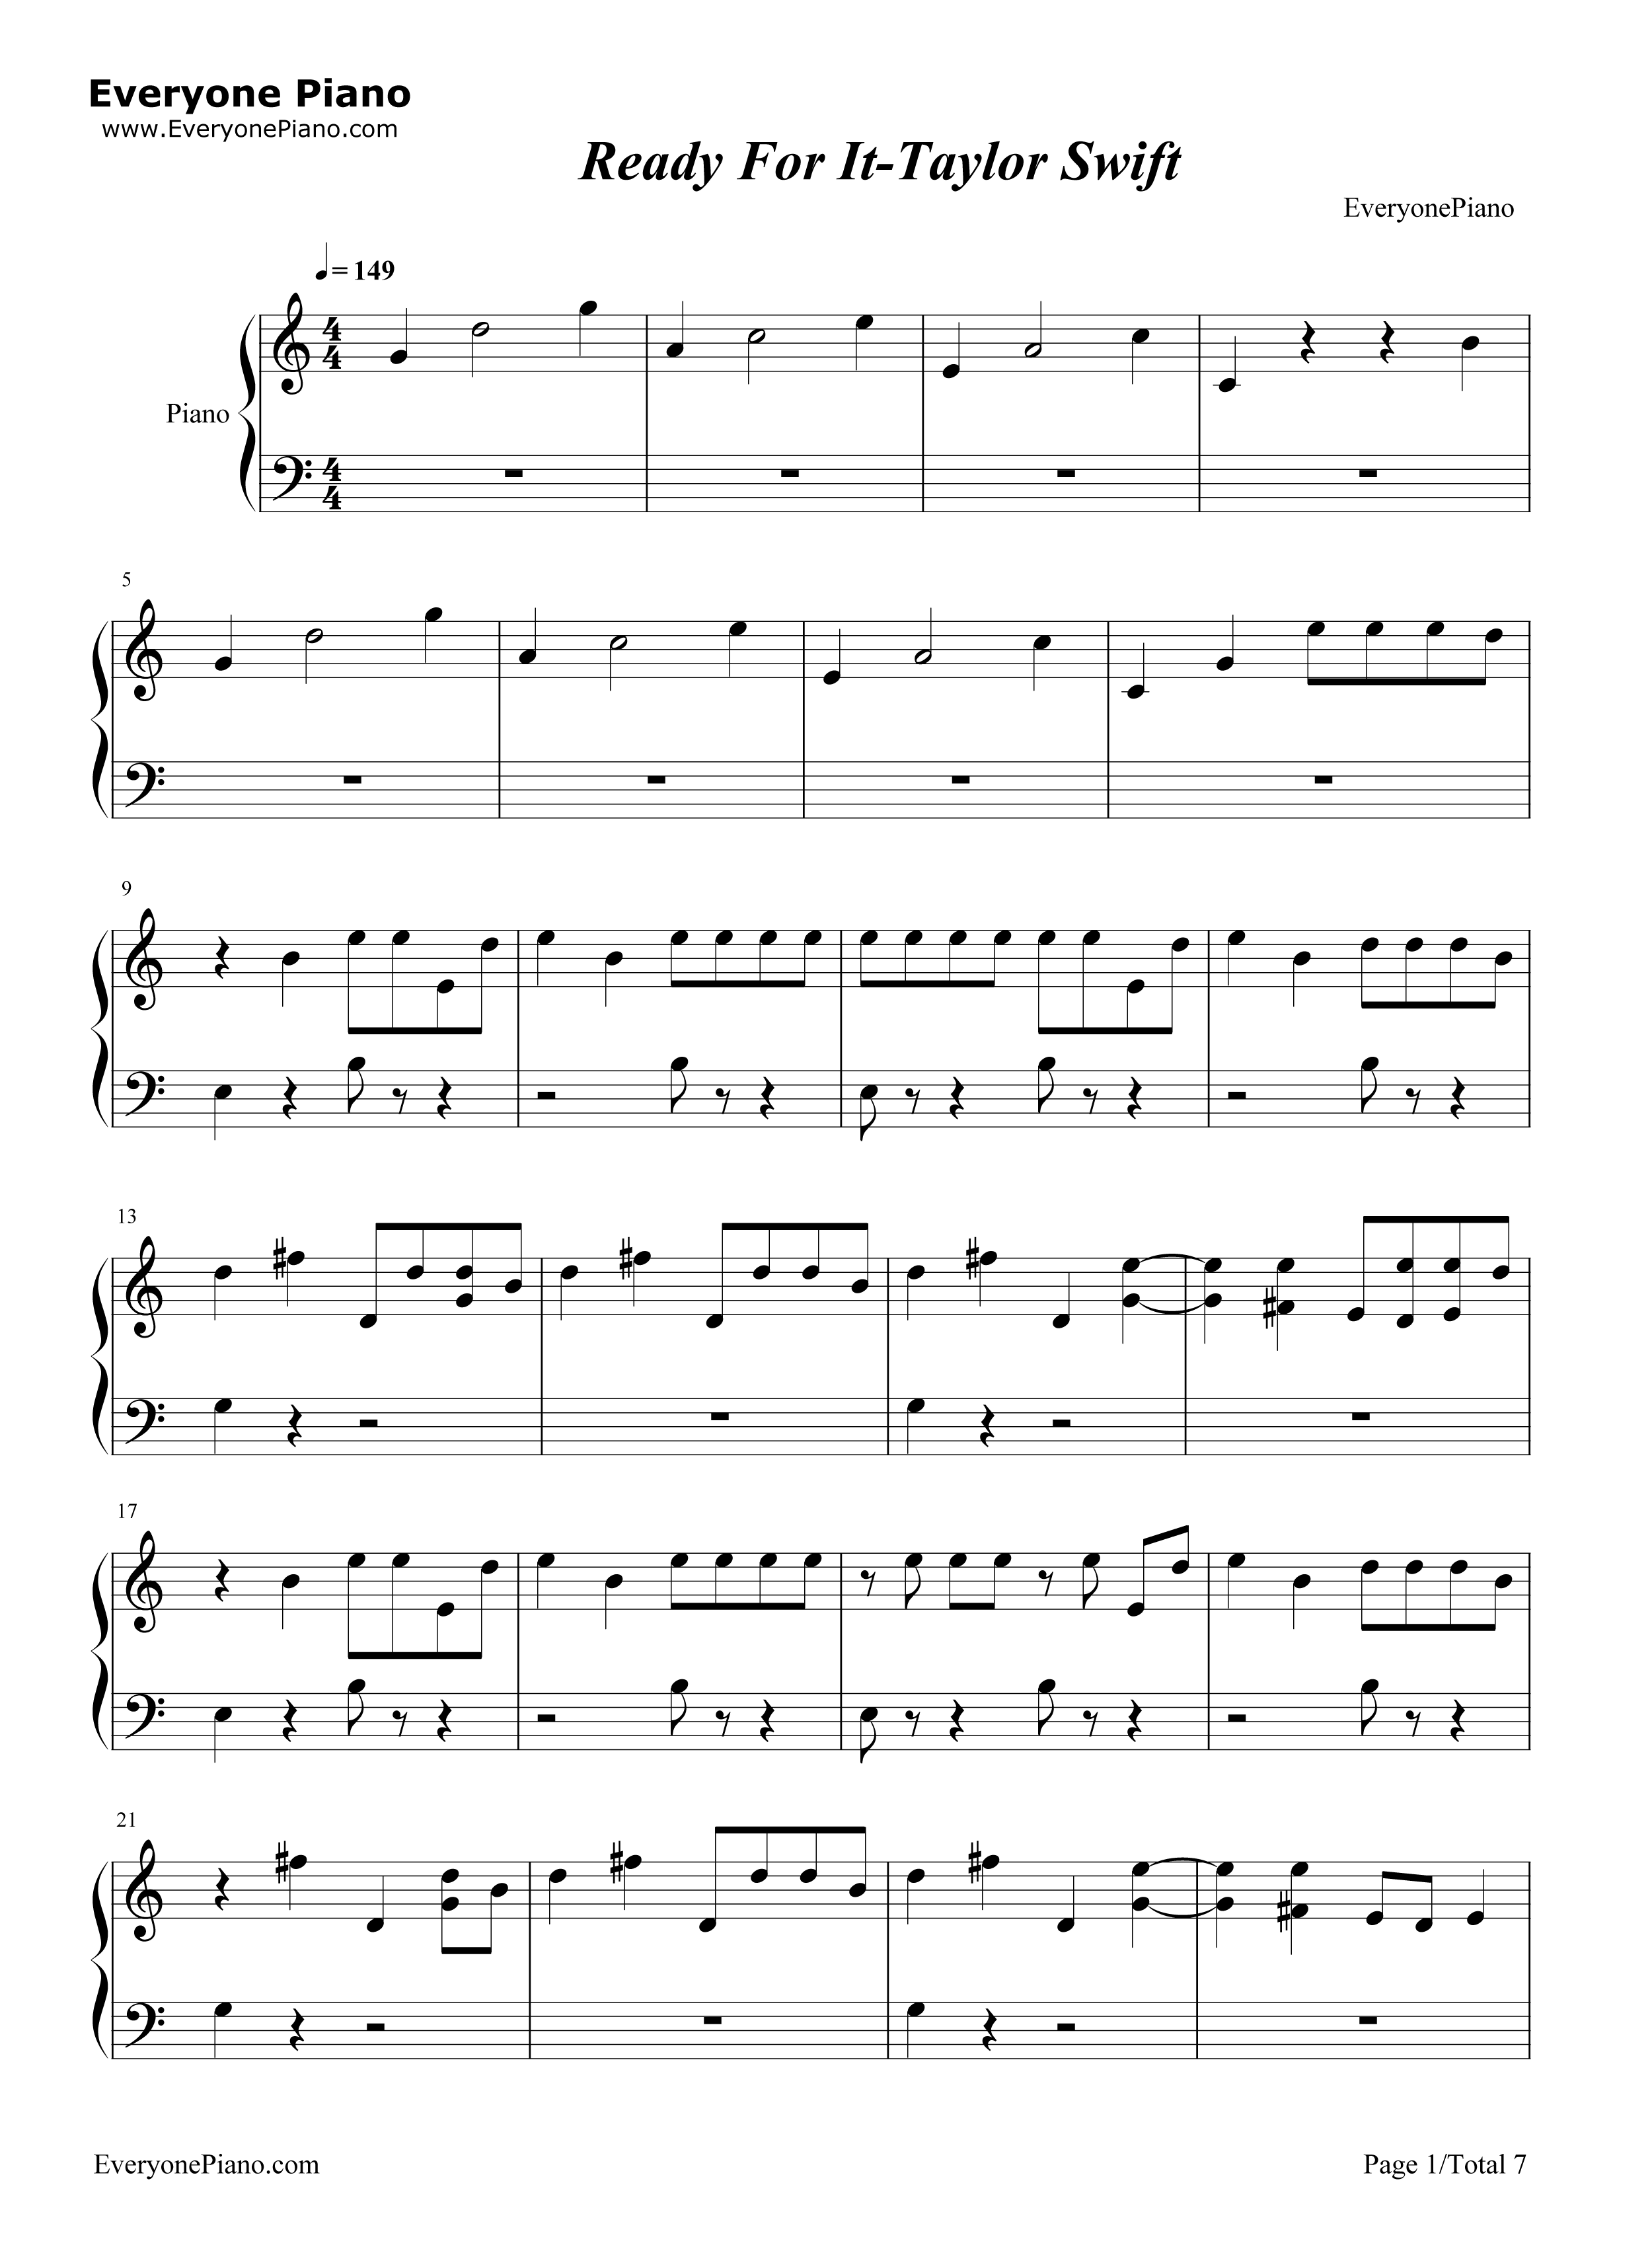 Ready for it taylor swift stave preview 1 free piano sheet music listen now print sheet ready for it taylor swift stave preview 1 hexwebz Gallery